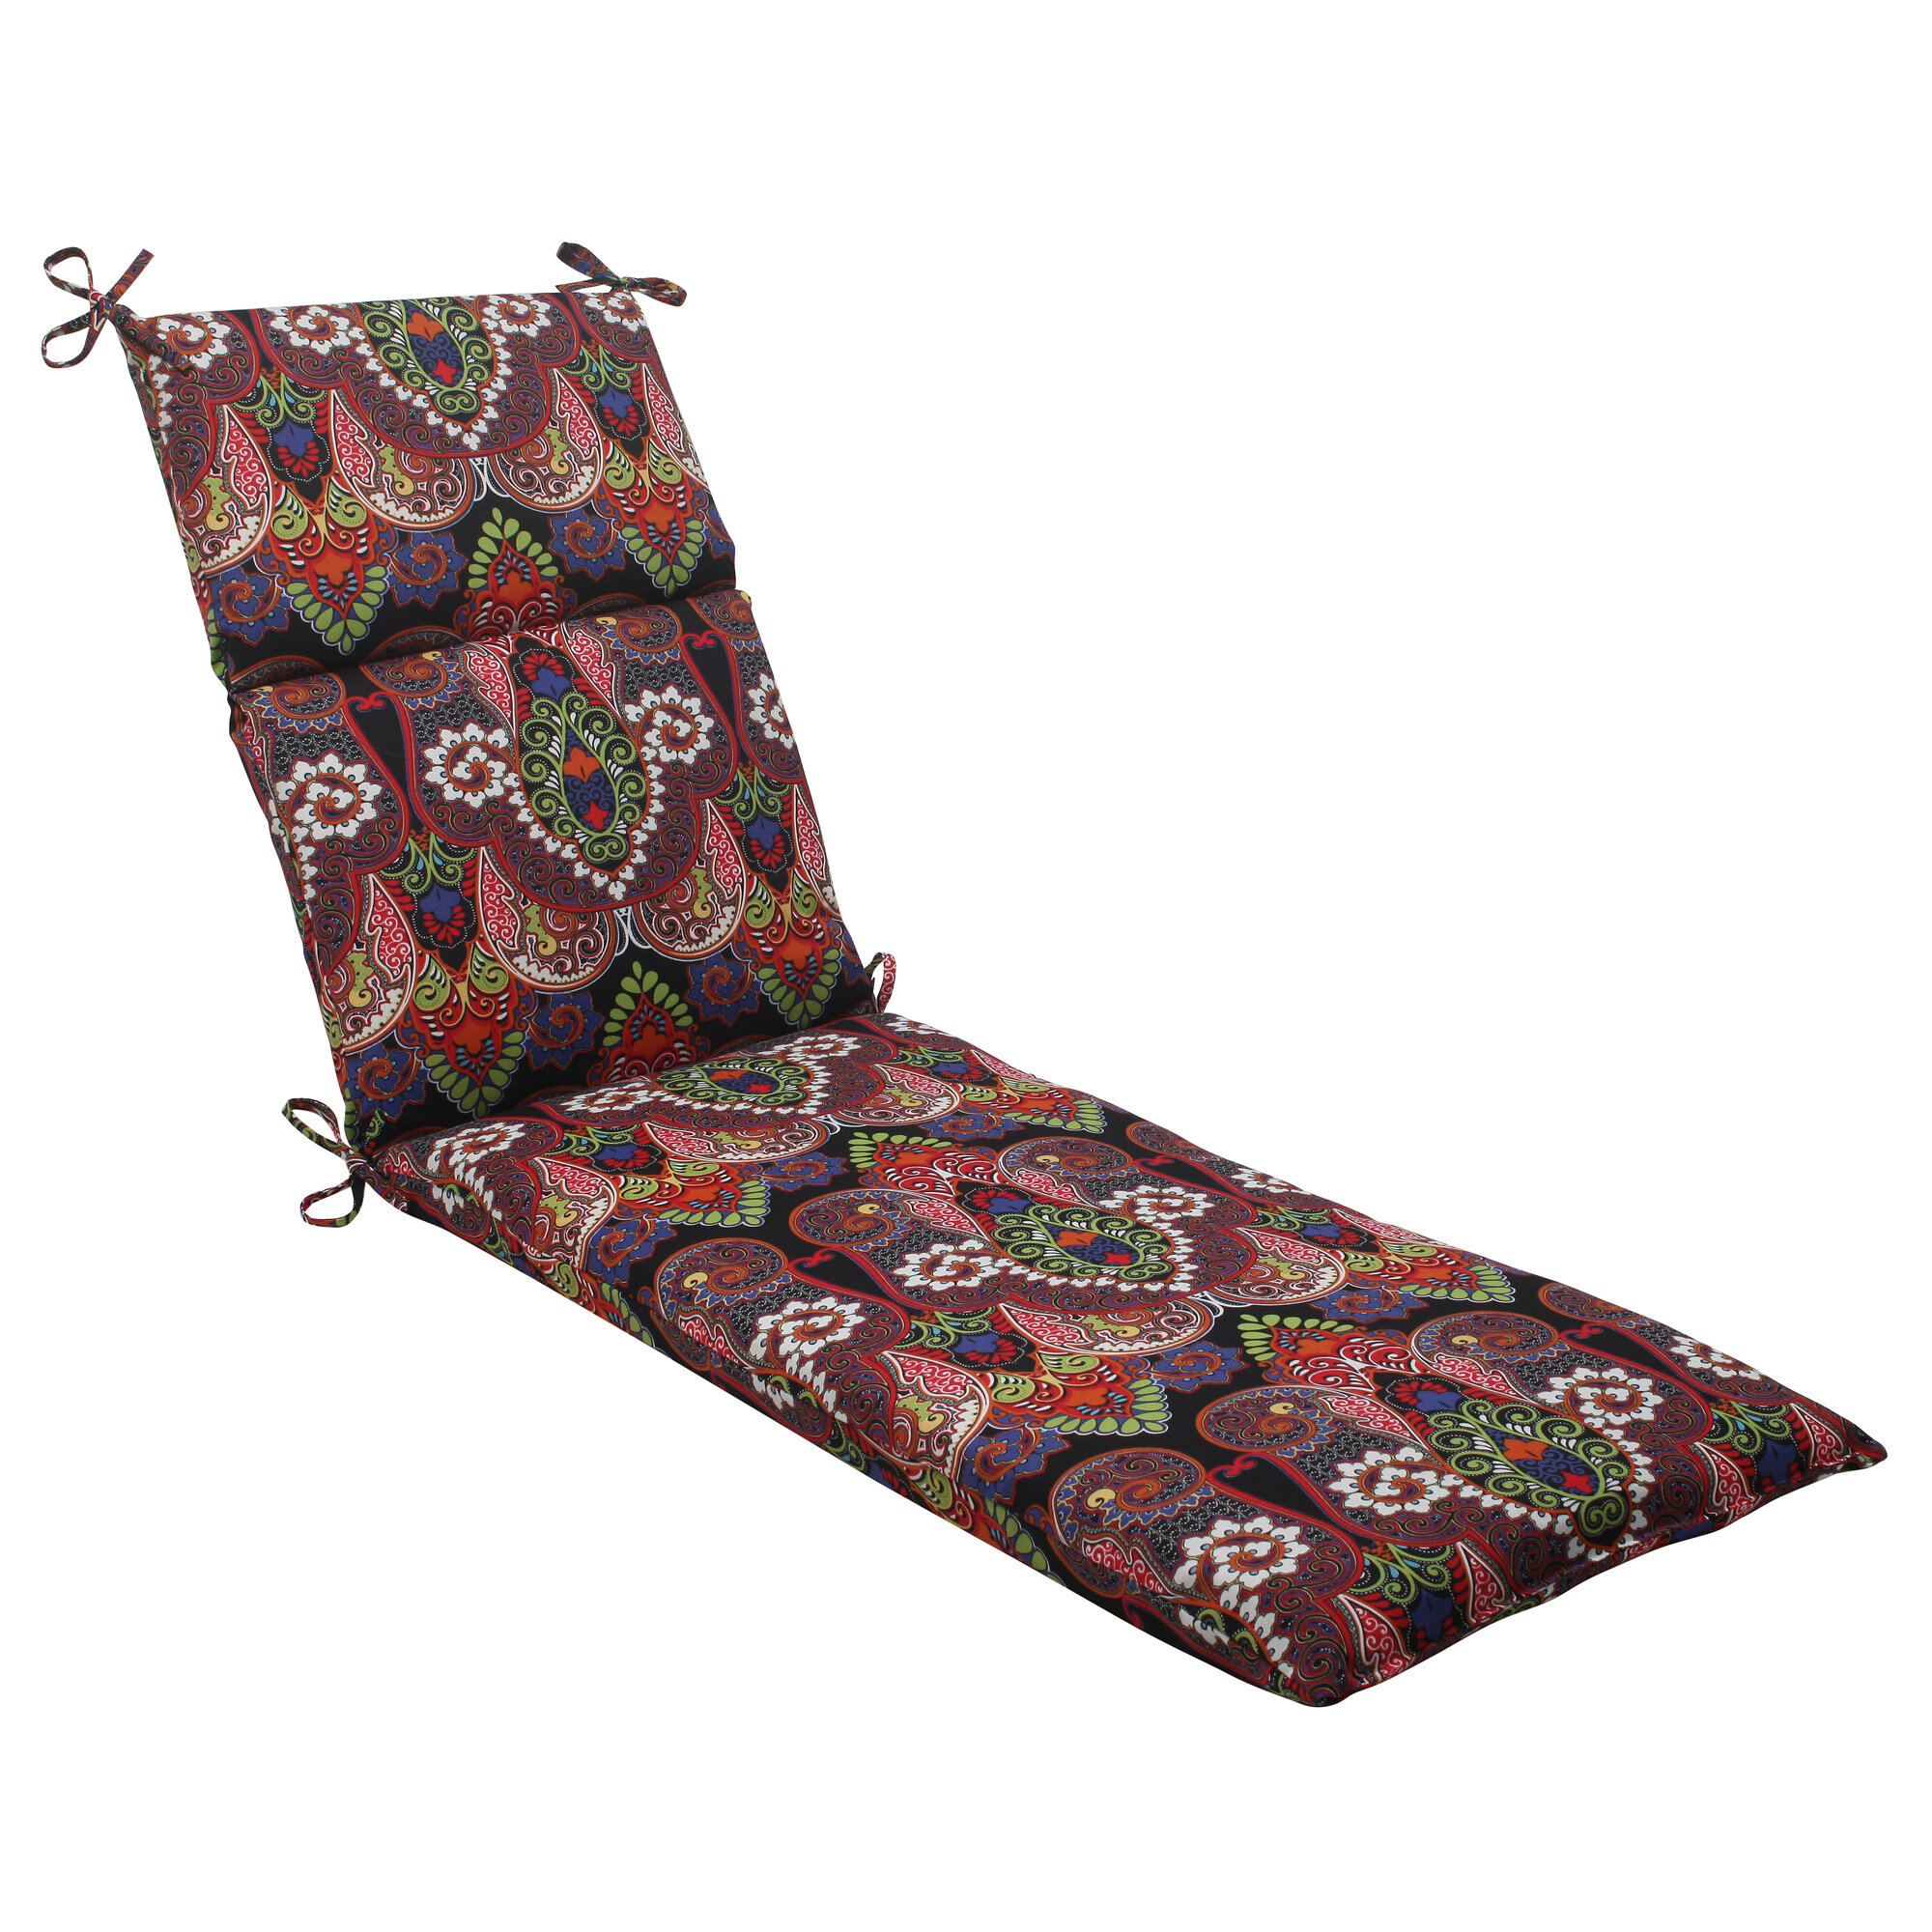 Pillow perfect marapi outdoor chaise lounge cushion ebay for Chaise lounge cushion outdoor